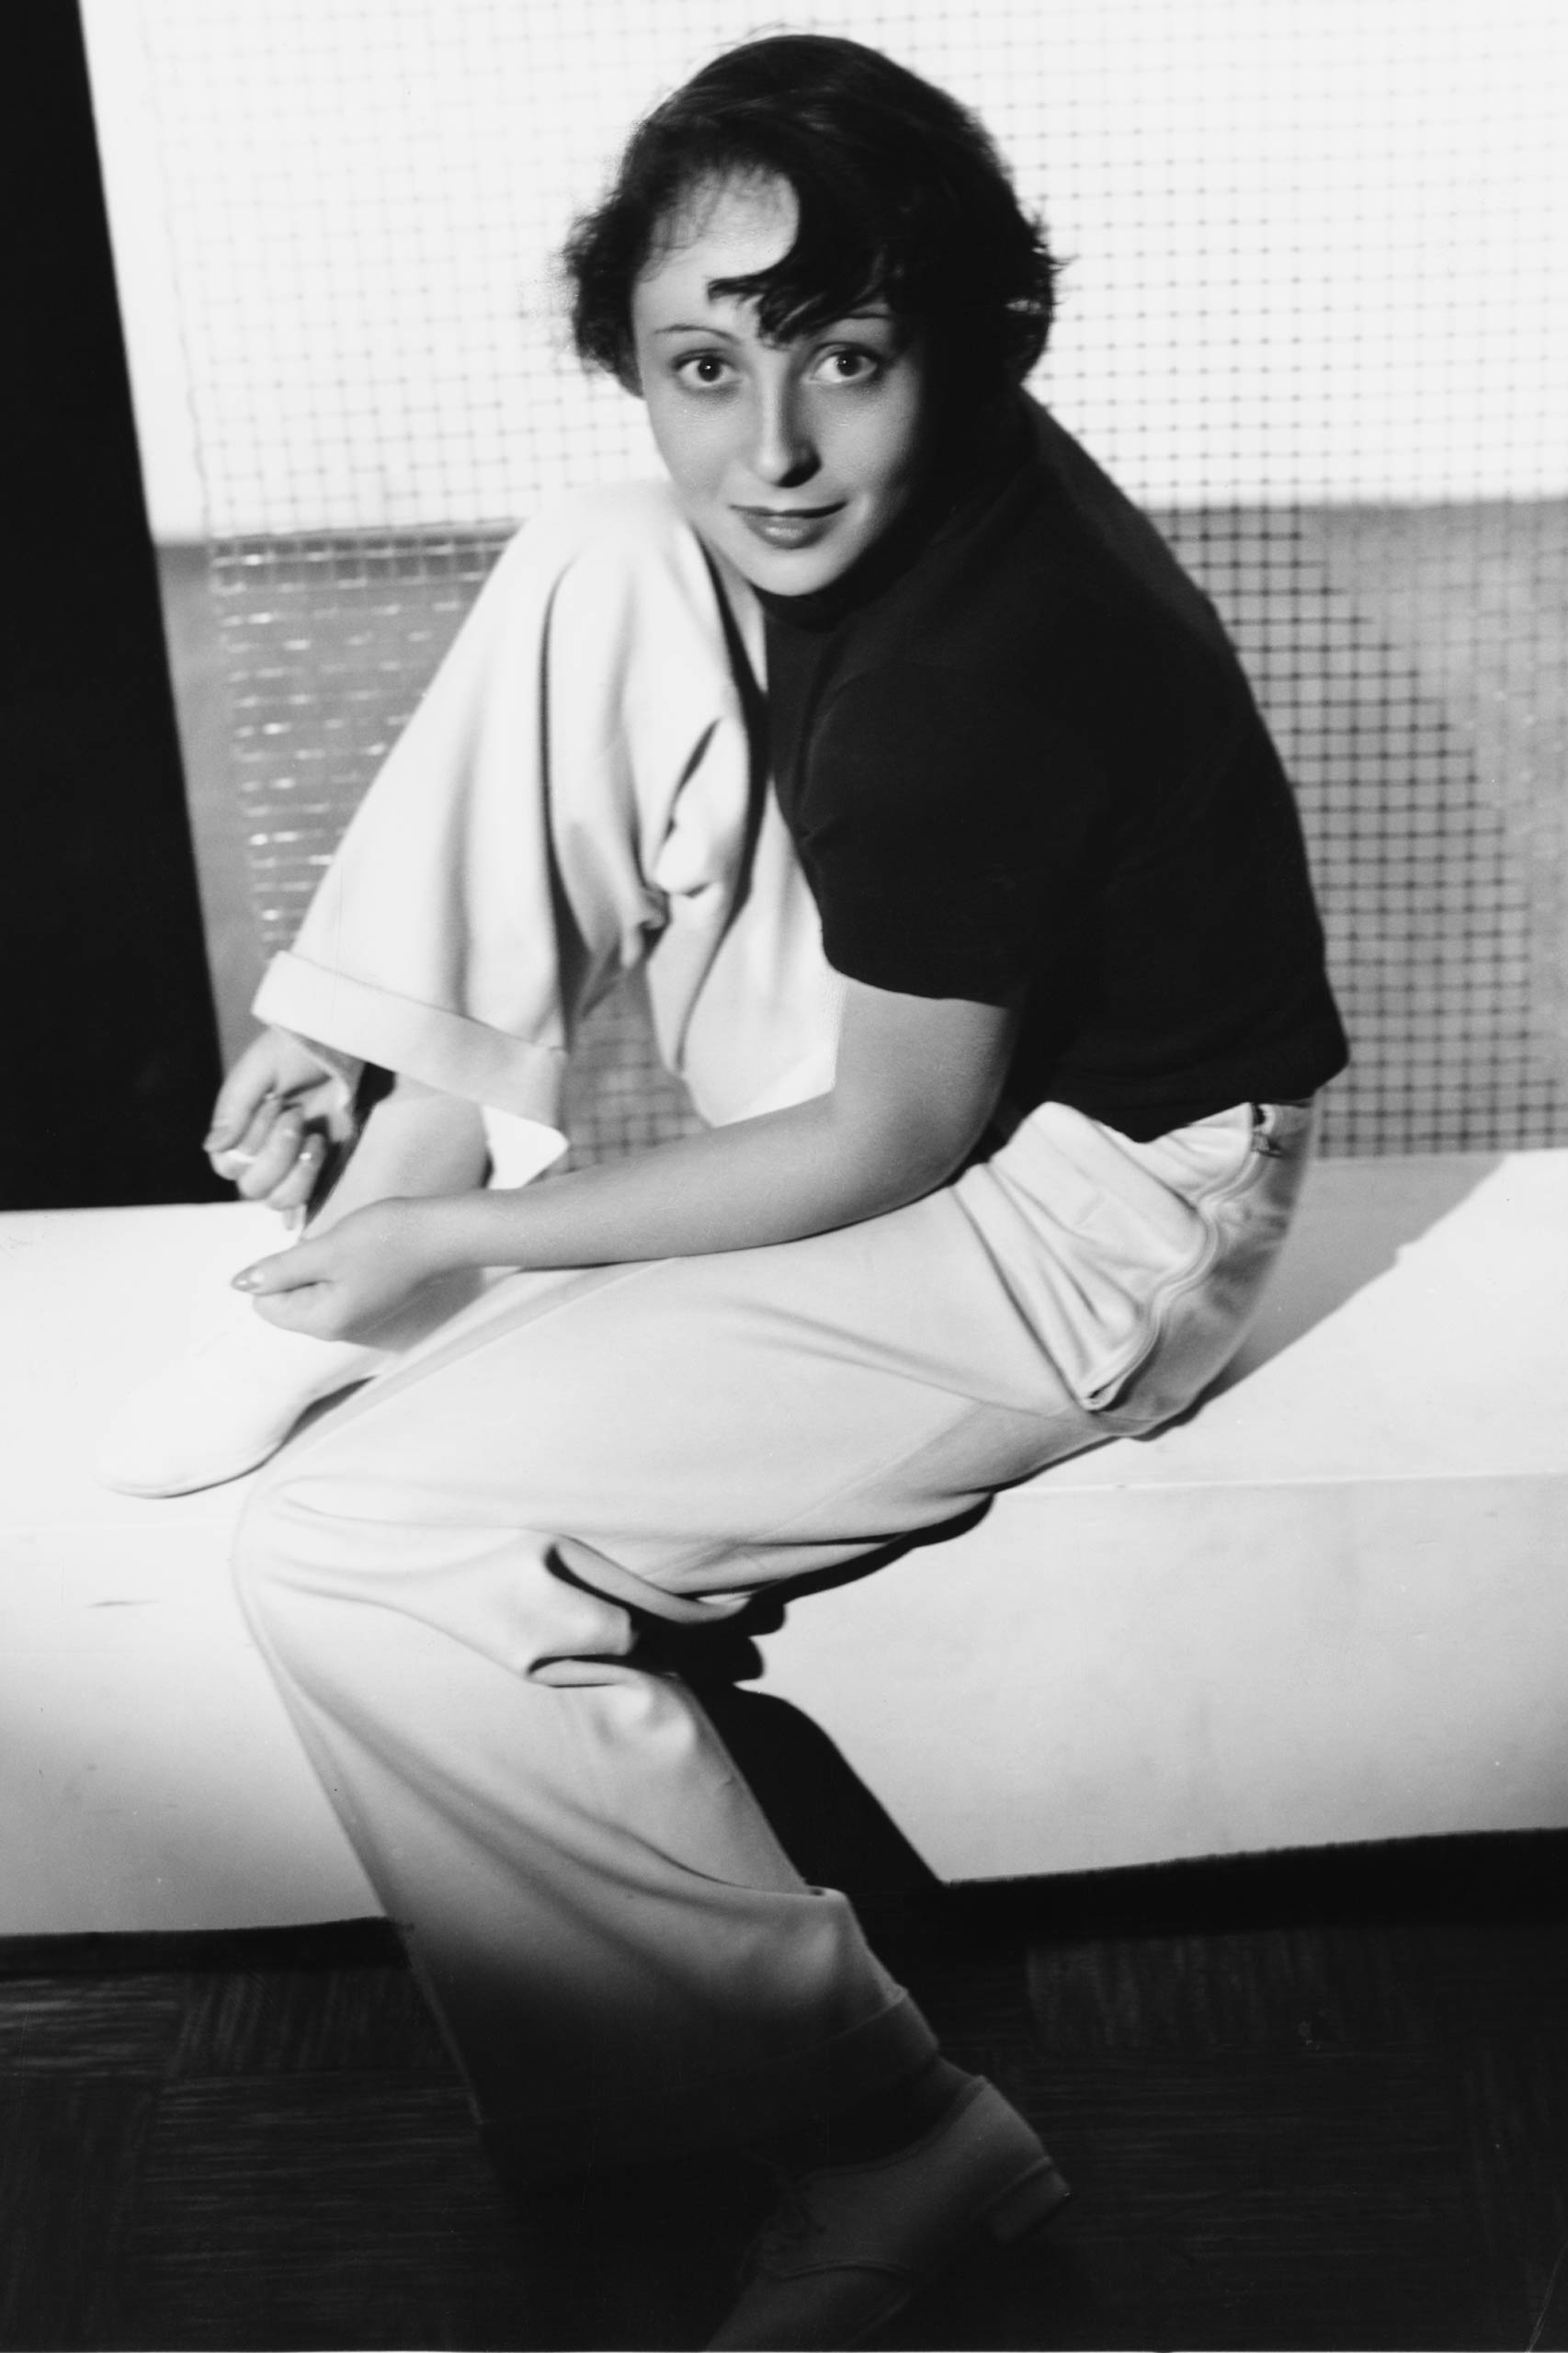 <strong>1937: Luise Rainer - <i>The Great Ziegfeld</i>                                   1938: Luise Rainer - <i>The Good Earth</i></strong>